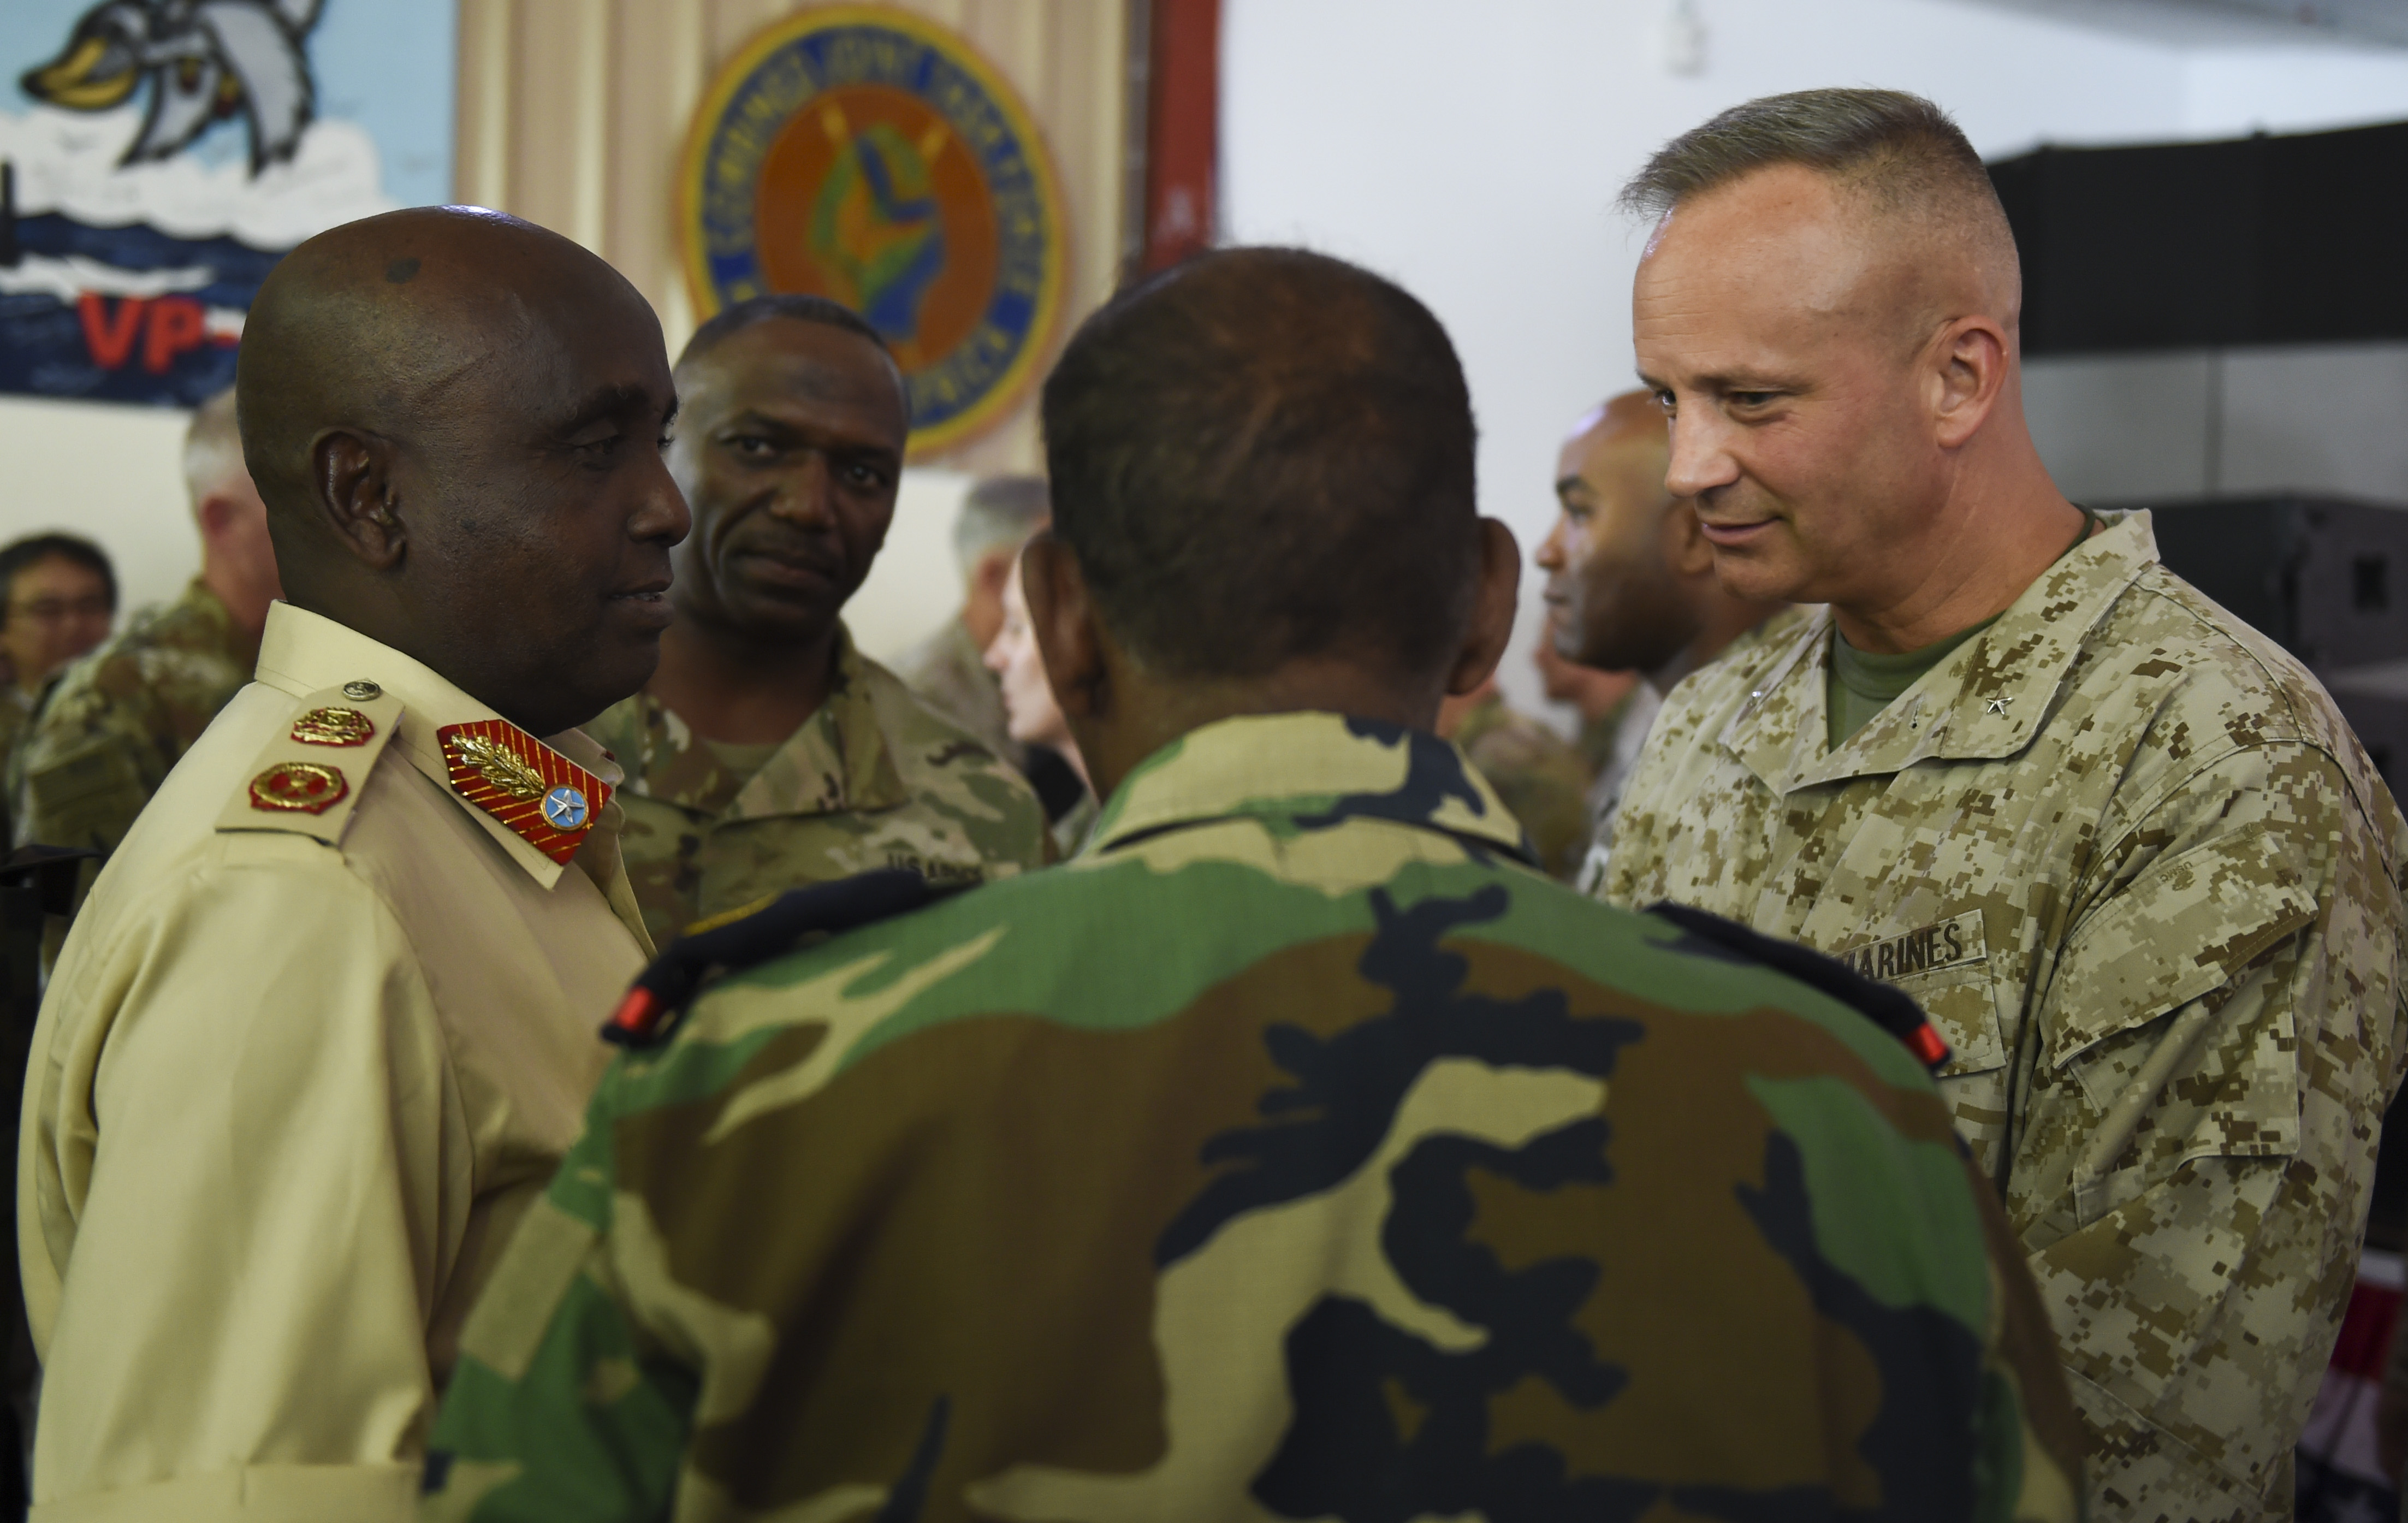 U.S. Marine Corps Brig. Gen. David J. Furness, Combined Joint Task Force - Horn of Africa commander, speaks with regional partners from East Africa after the change of command ceremony on Camp Lemonnier in Djibouti, April 28, 2017. Furness has participated in contingency operations in the Republic of Panama and in the following named operations: Operation Provide Comfort, Operation Unified Assistance, Operation Iraqi Freedom, and Operation Enduring Freedom. (U.S. Air Force Photo by Eboni Prince)